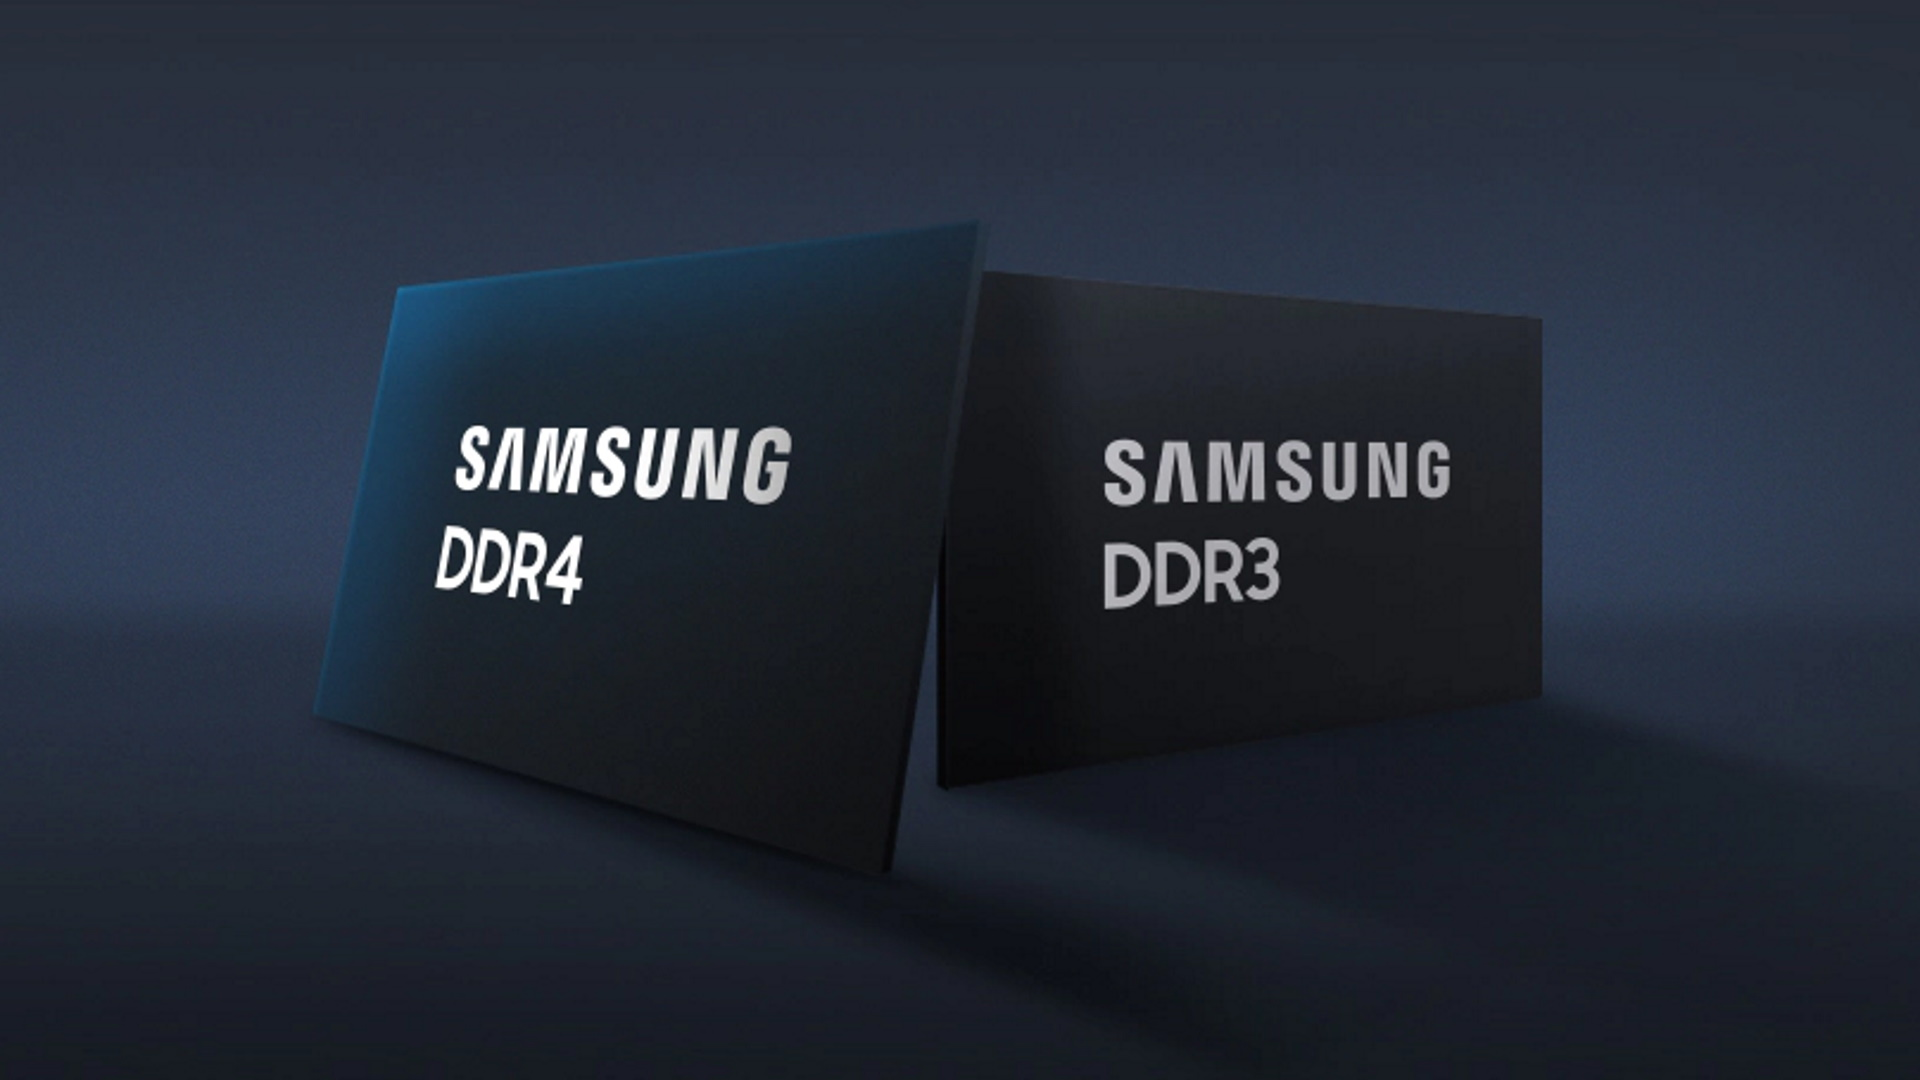 DDR3 RAM prices might rise despite DDR5 arriving later in the year